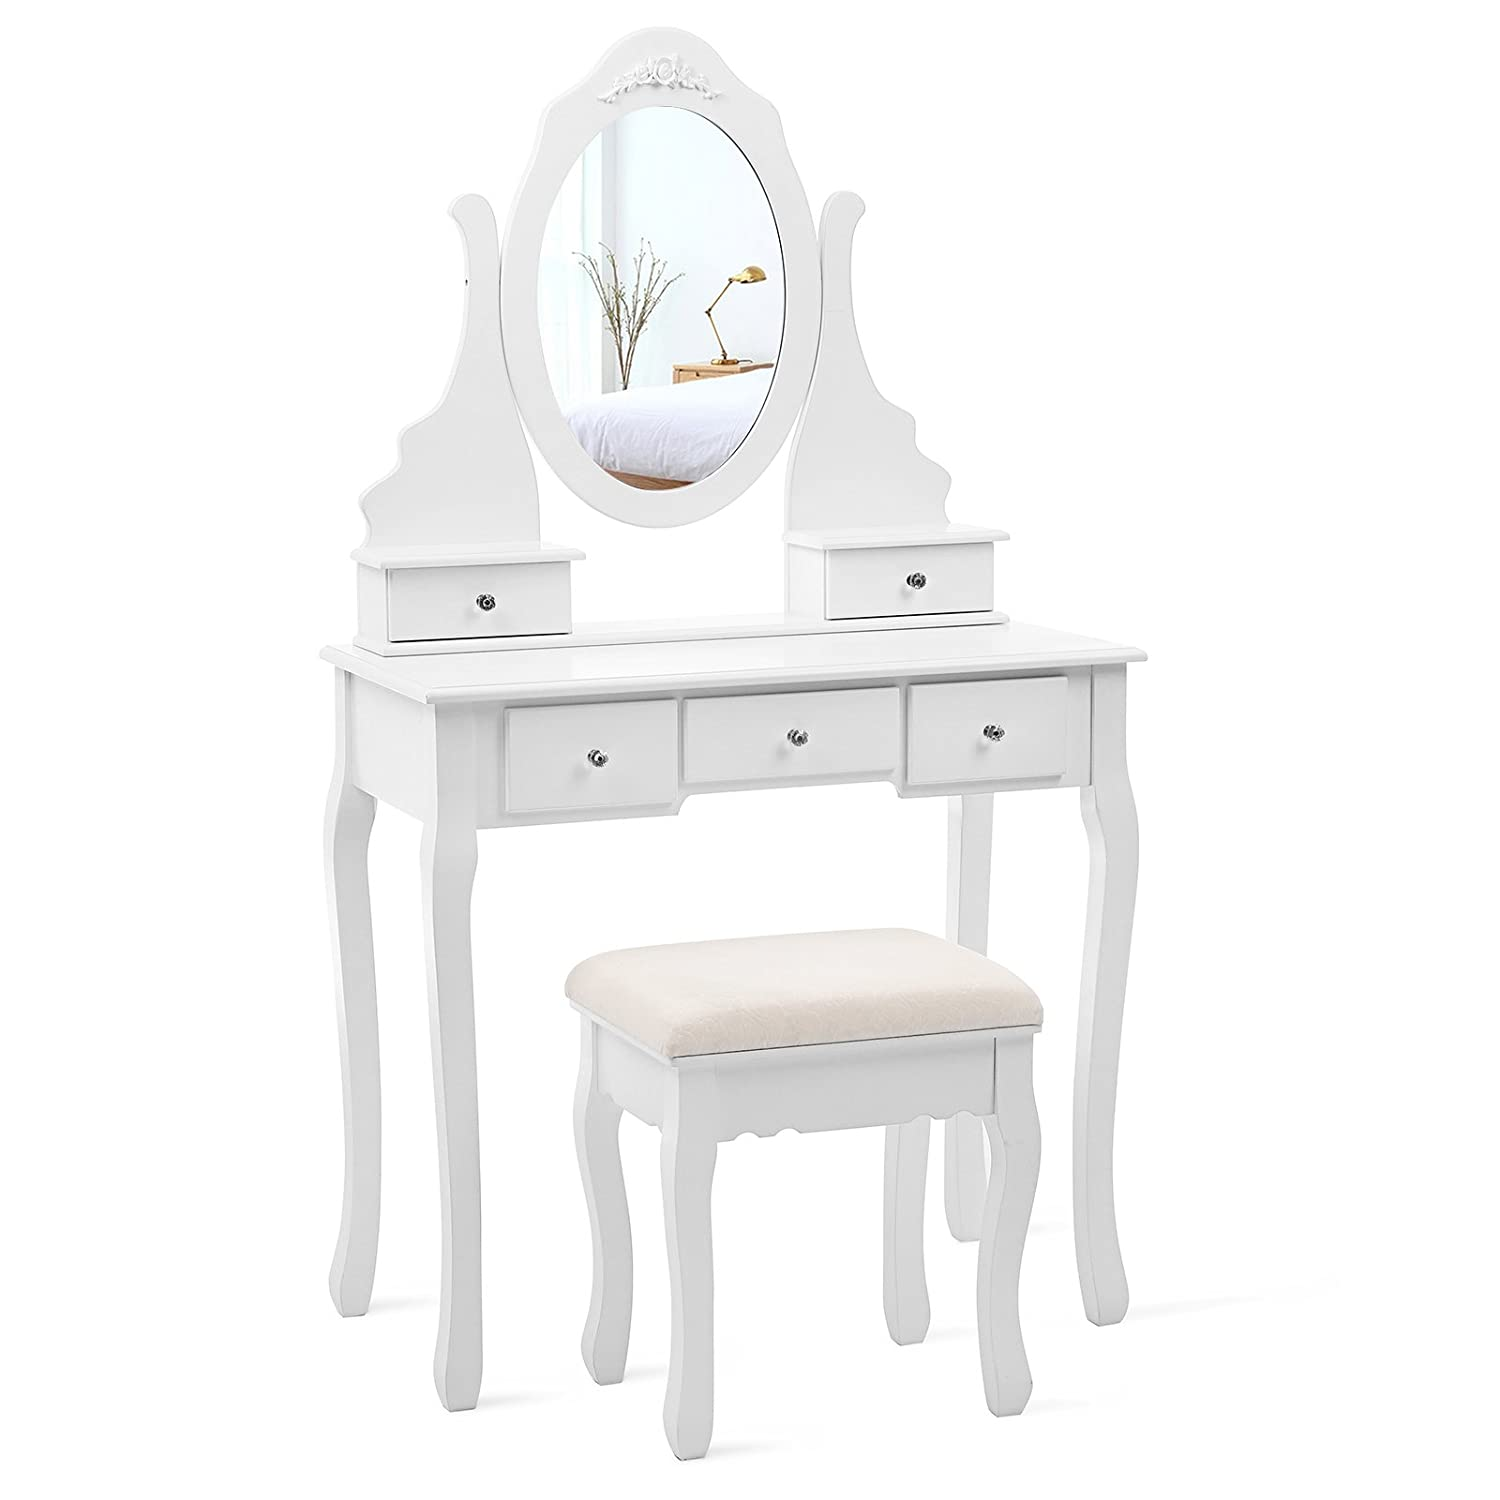 100 white and gold vanity table images for Chambre a coucher avec coiffeuse